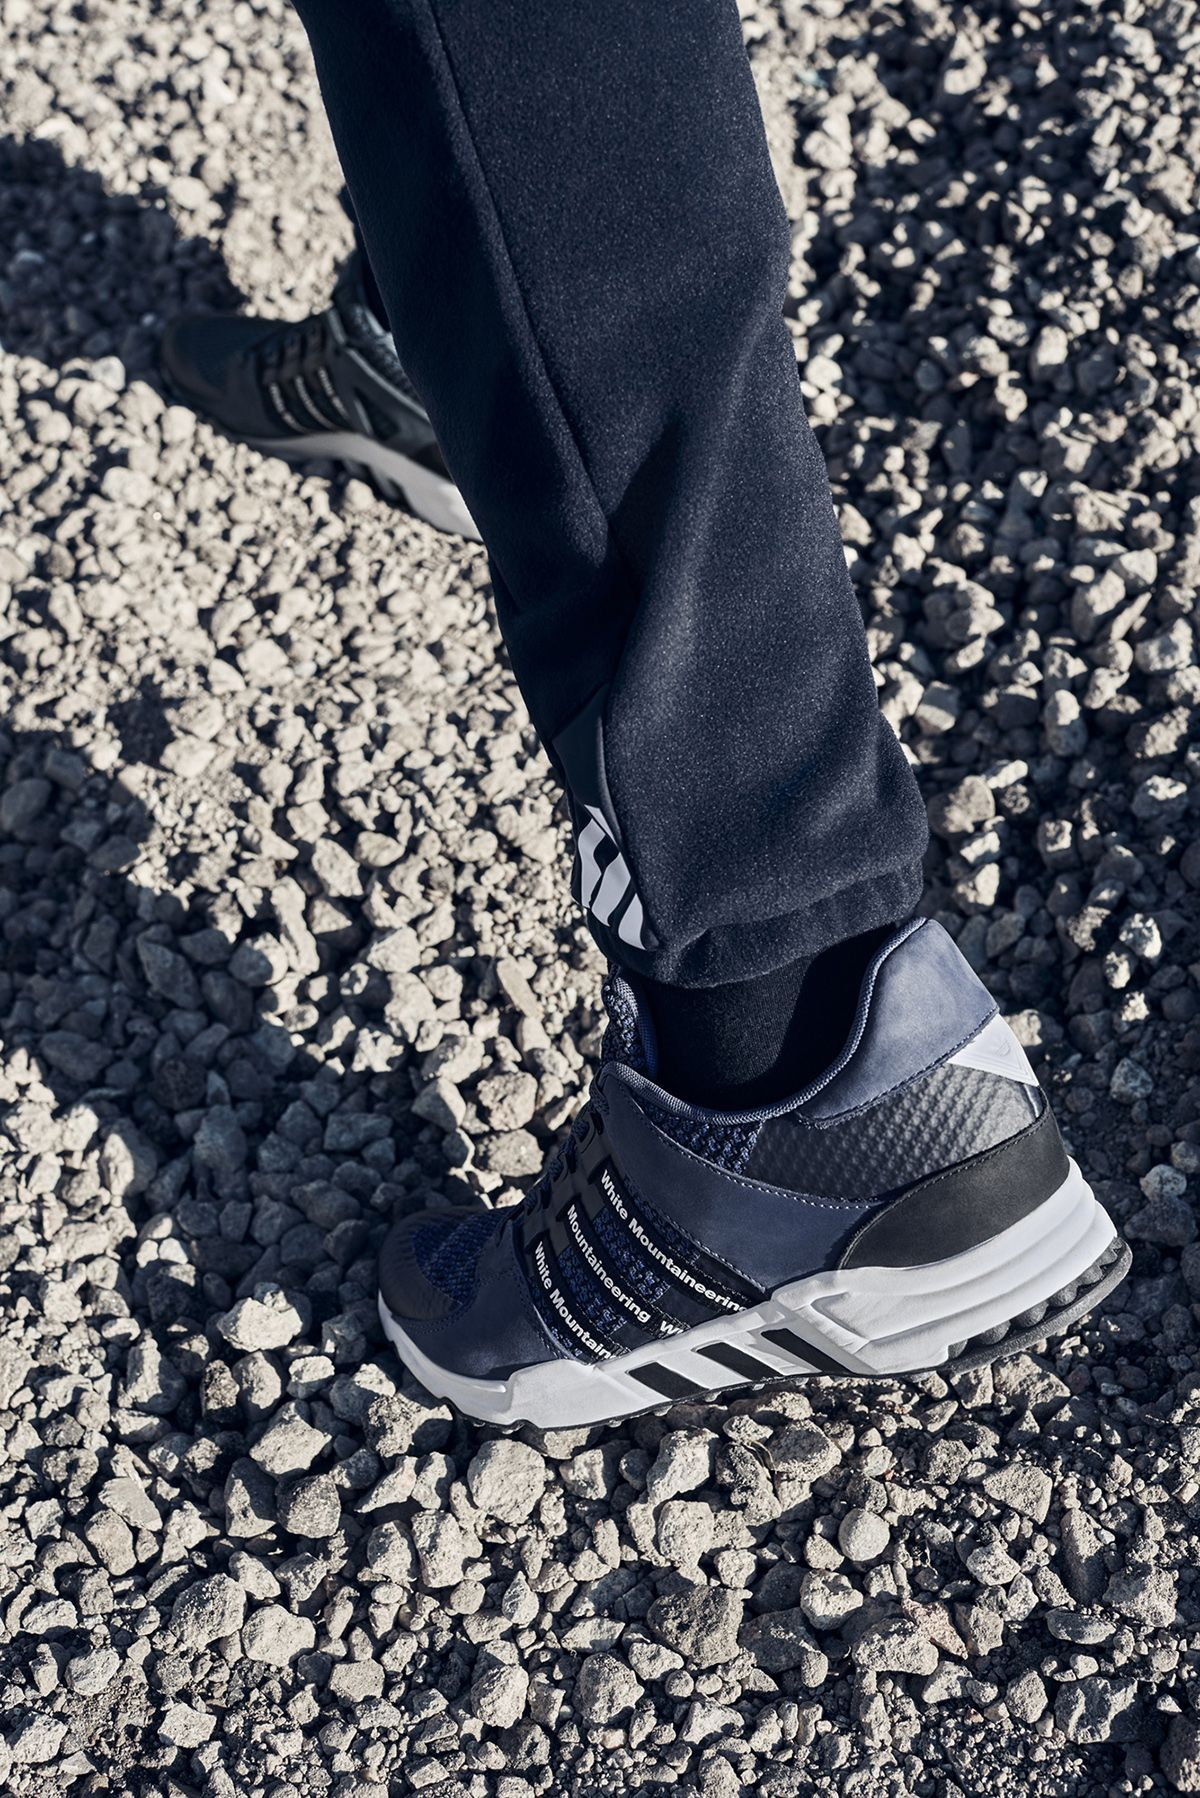 White Sneakers: Mountaineering x adidas EQT Running 93 Sneakers: White adidas x 422c9d